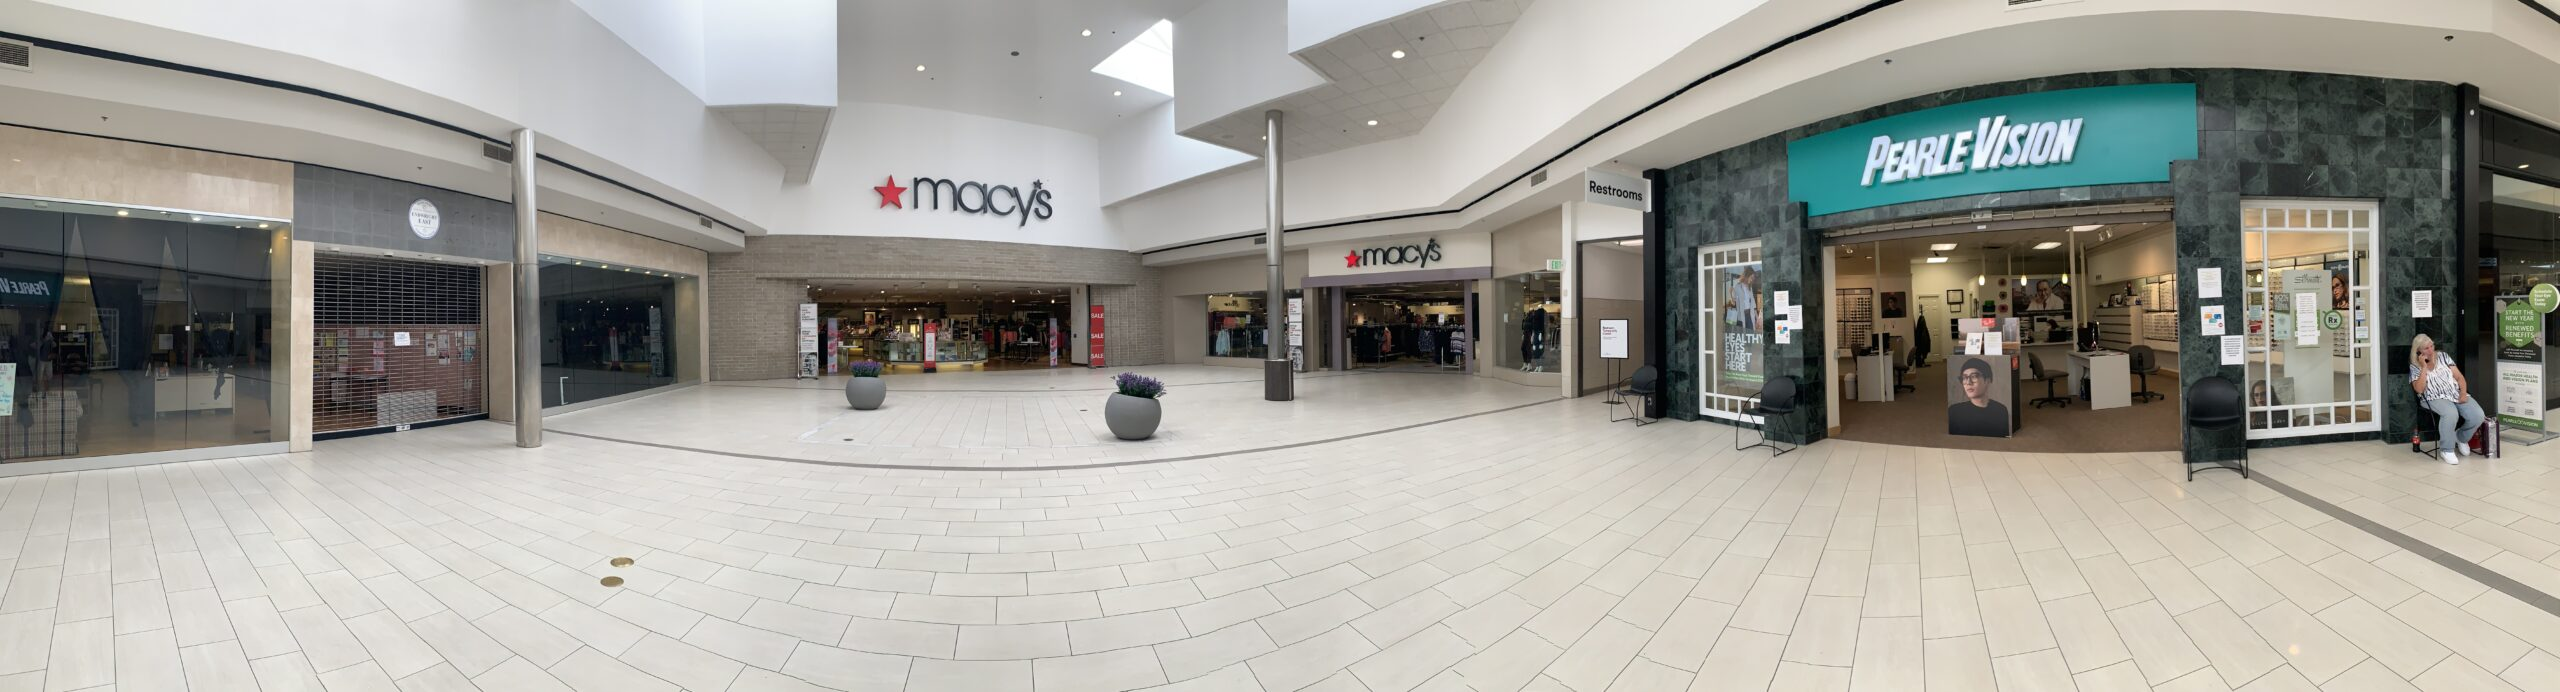 Endwright East, near Macy's where Payless Shoesource used to be